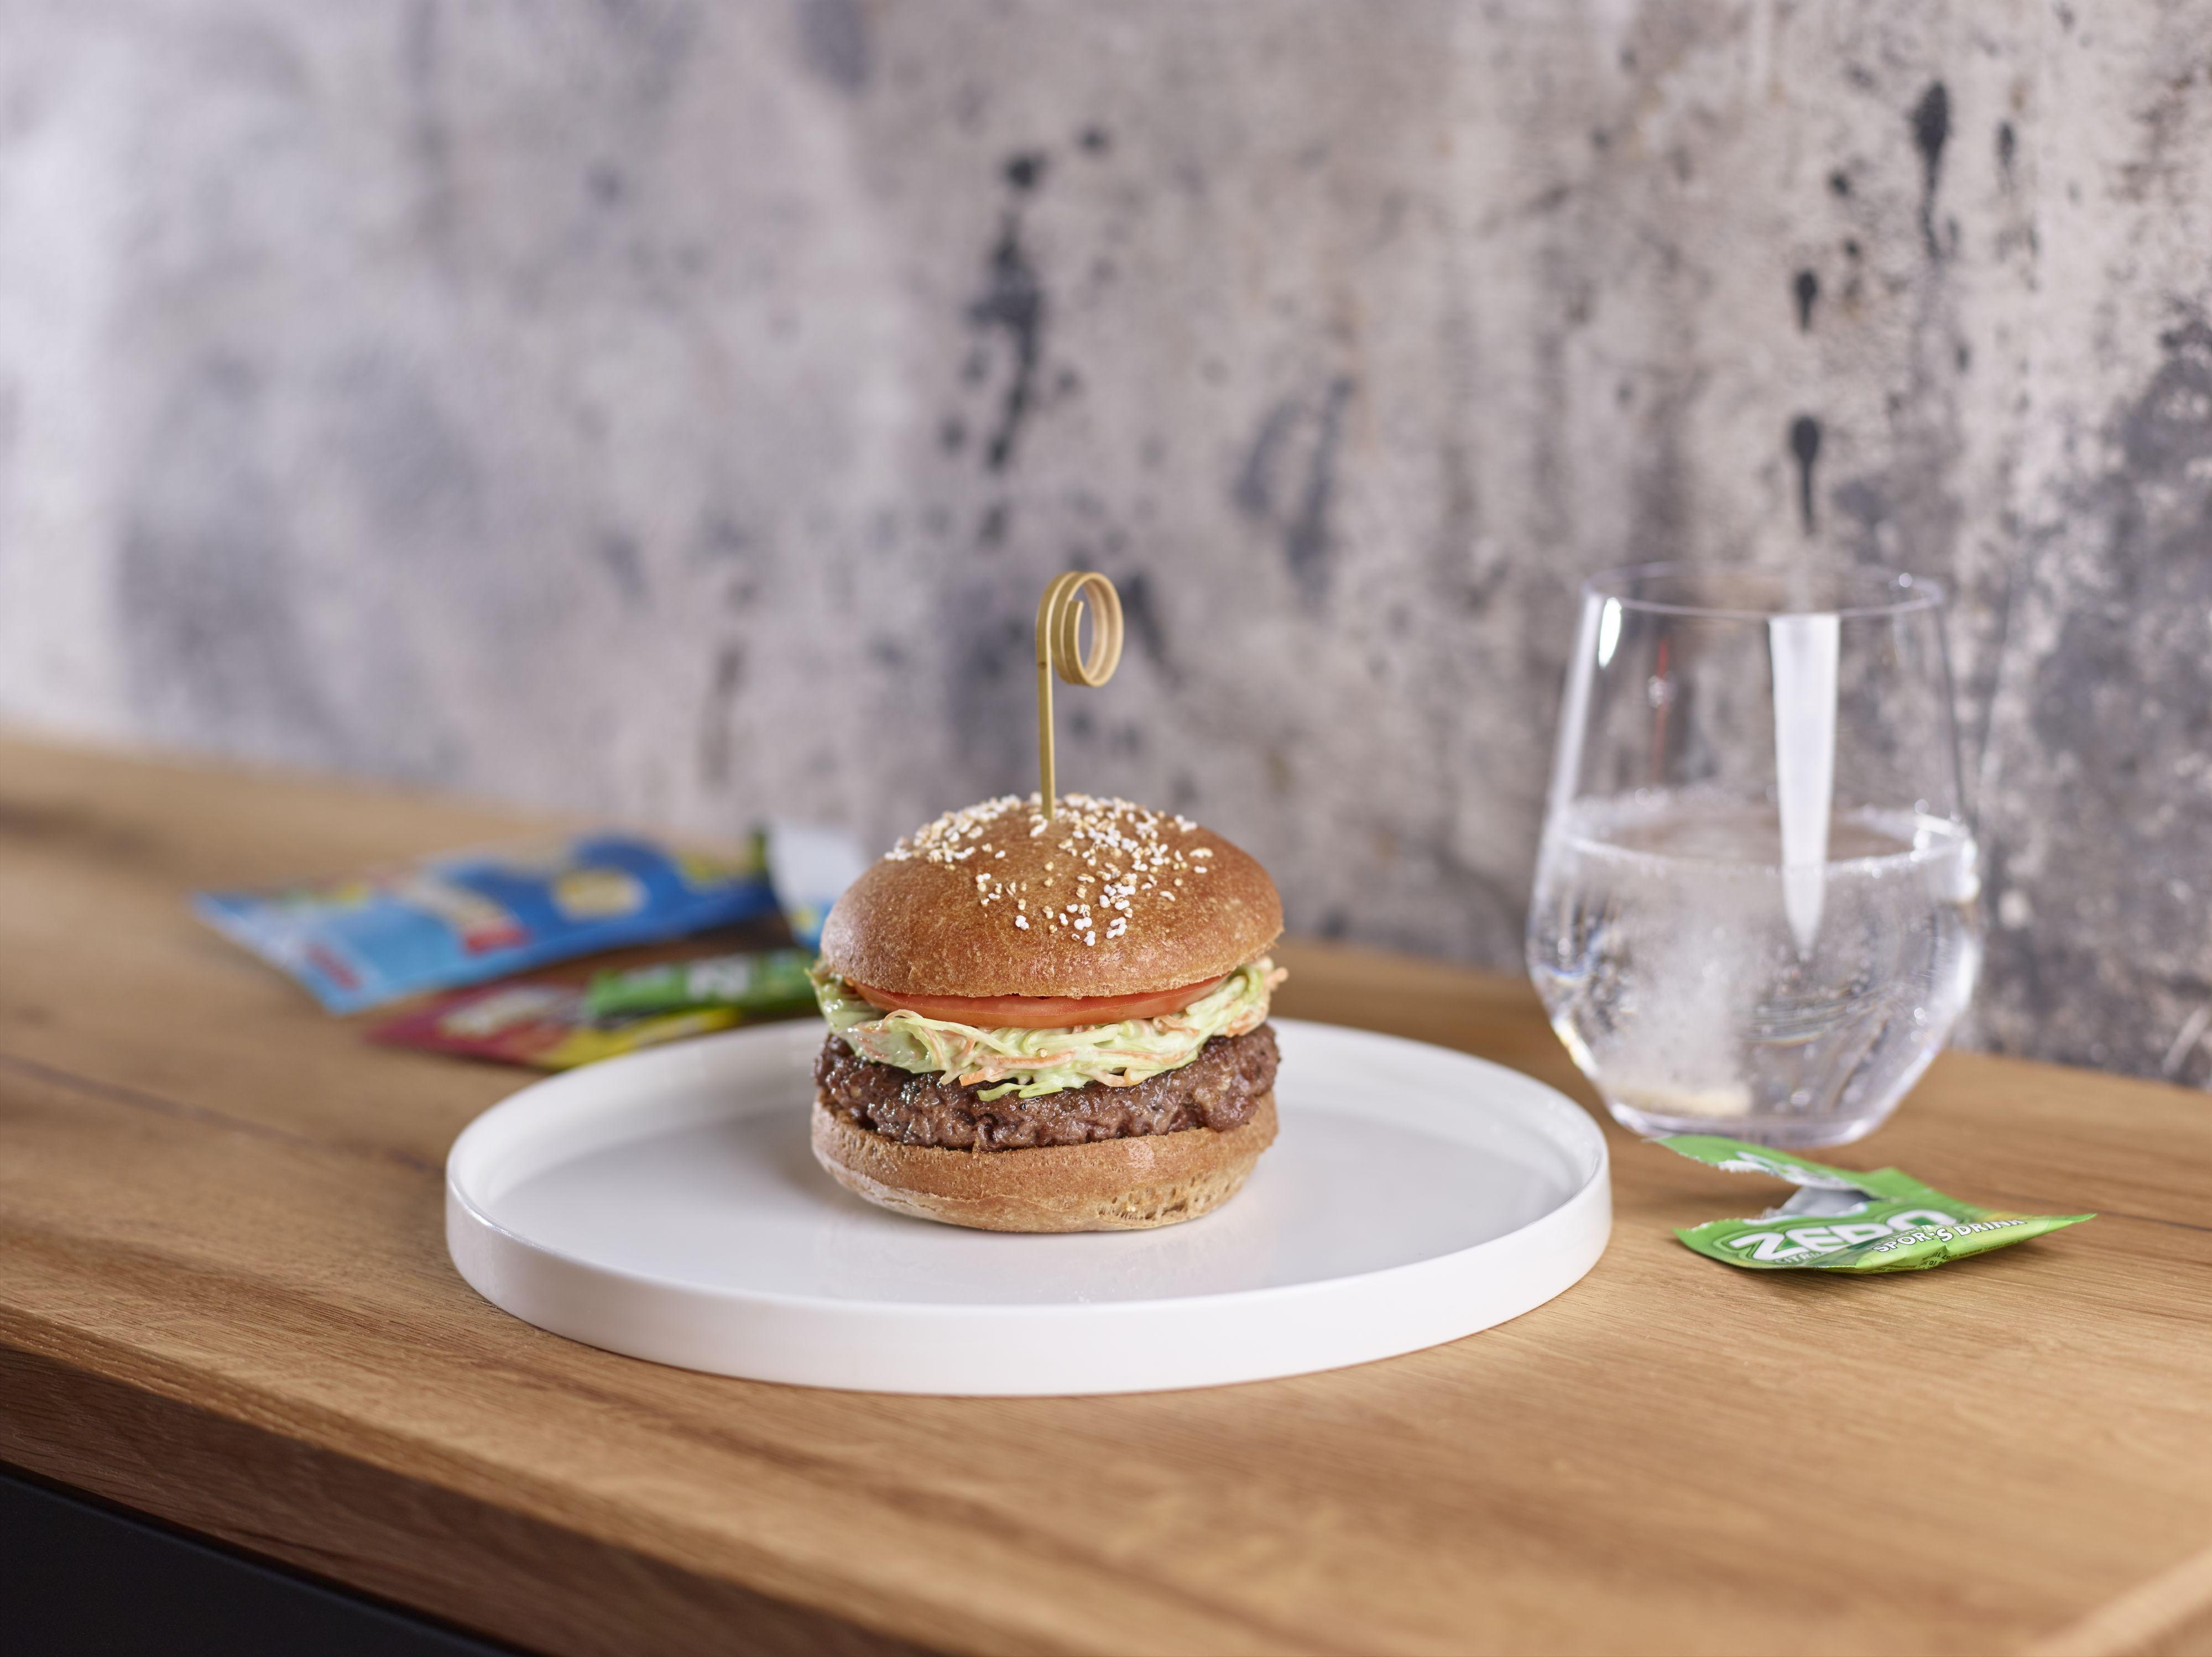 Hamburger met speltbrood, coleslaw en avocado